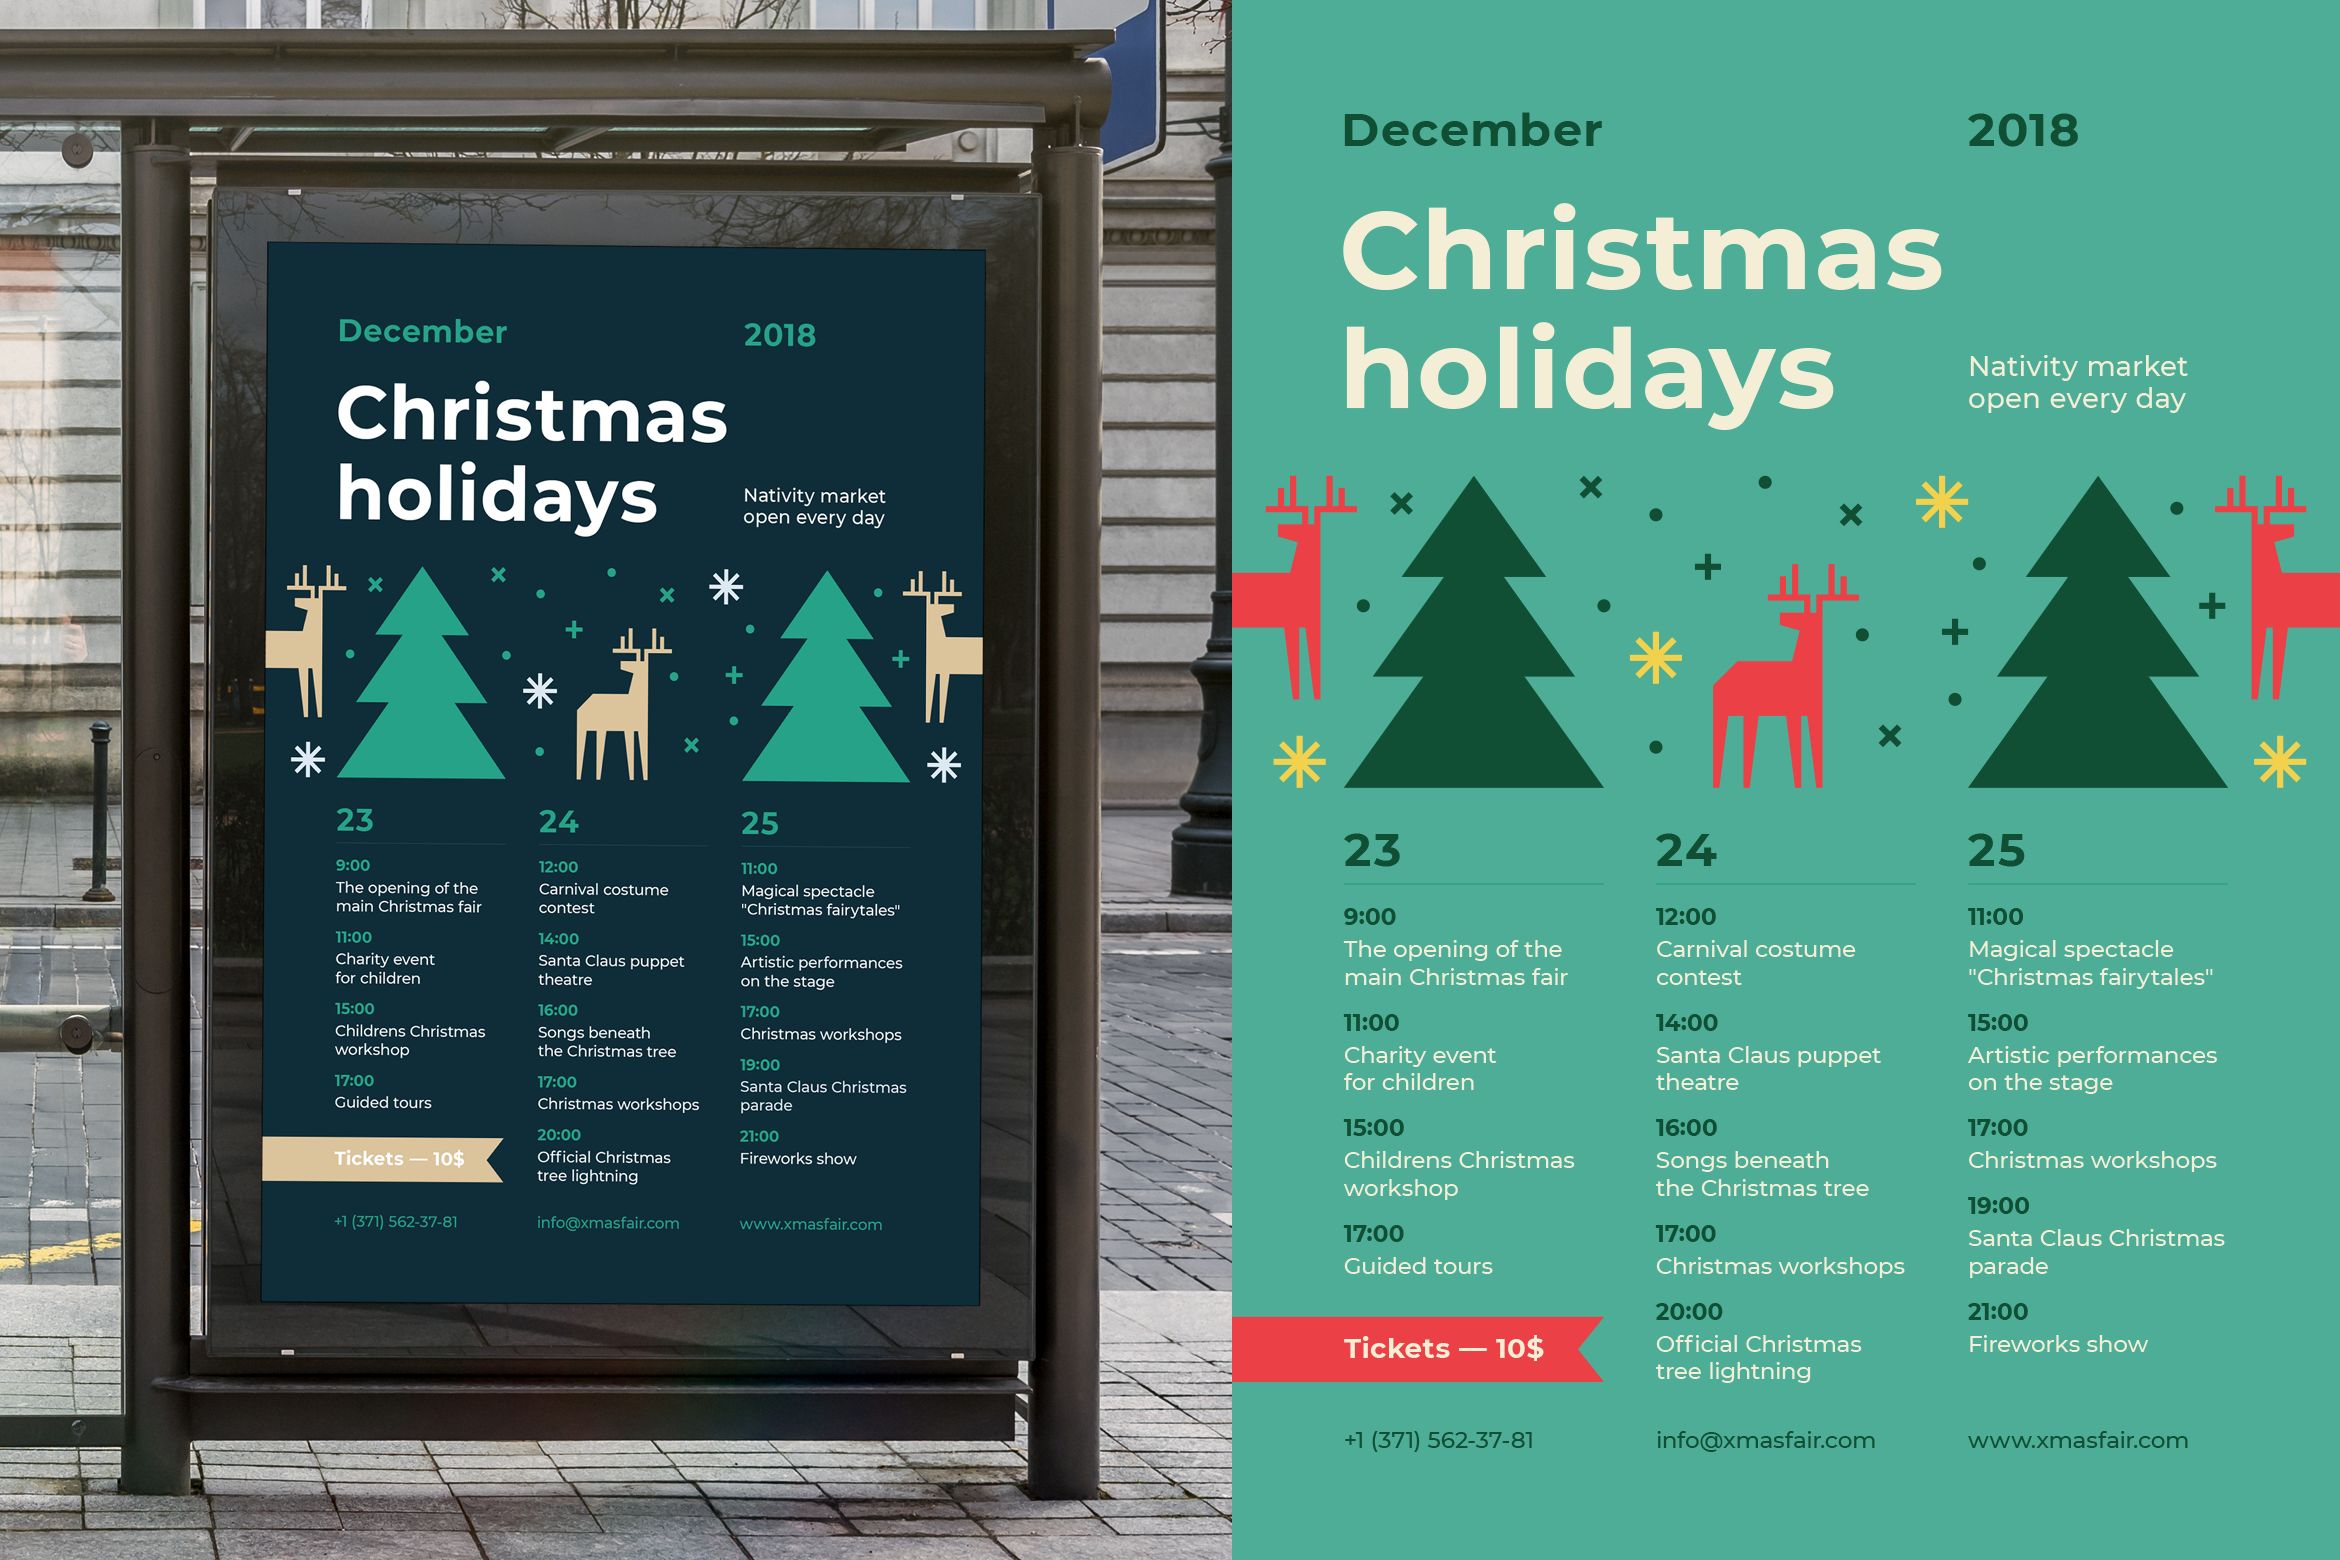 Christmas holidays poster preview  ee  2340x1560px 01